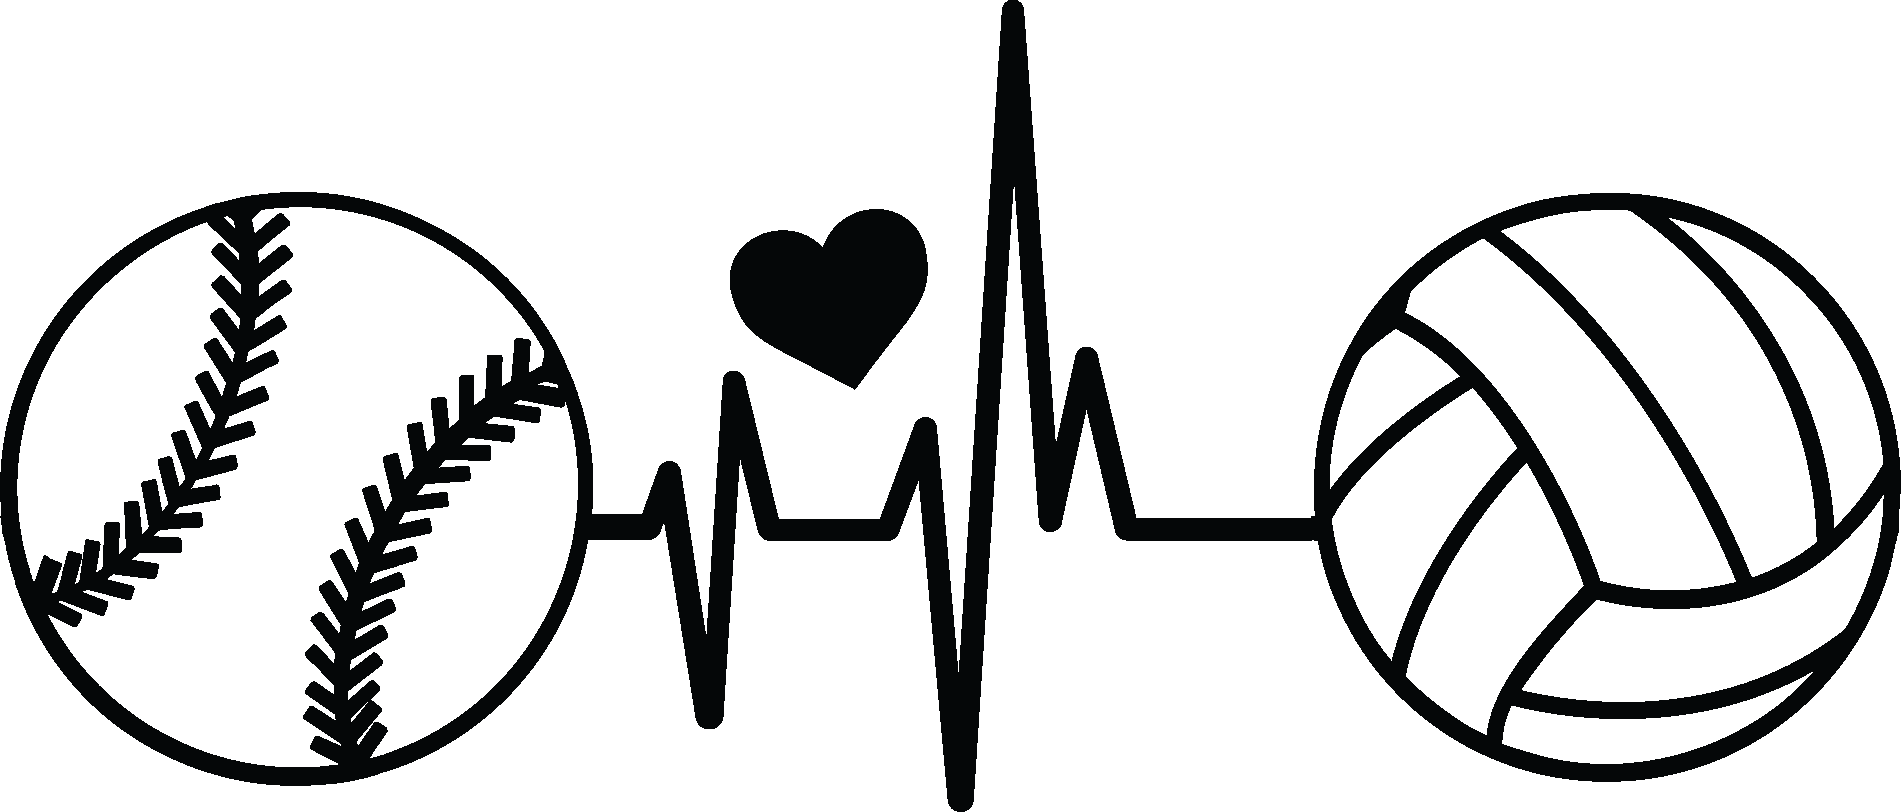 Clipart Volleyball With Heart | Free Images at Clker.com - vector clip art  online, royalty free & public domain